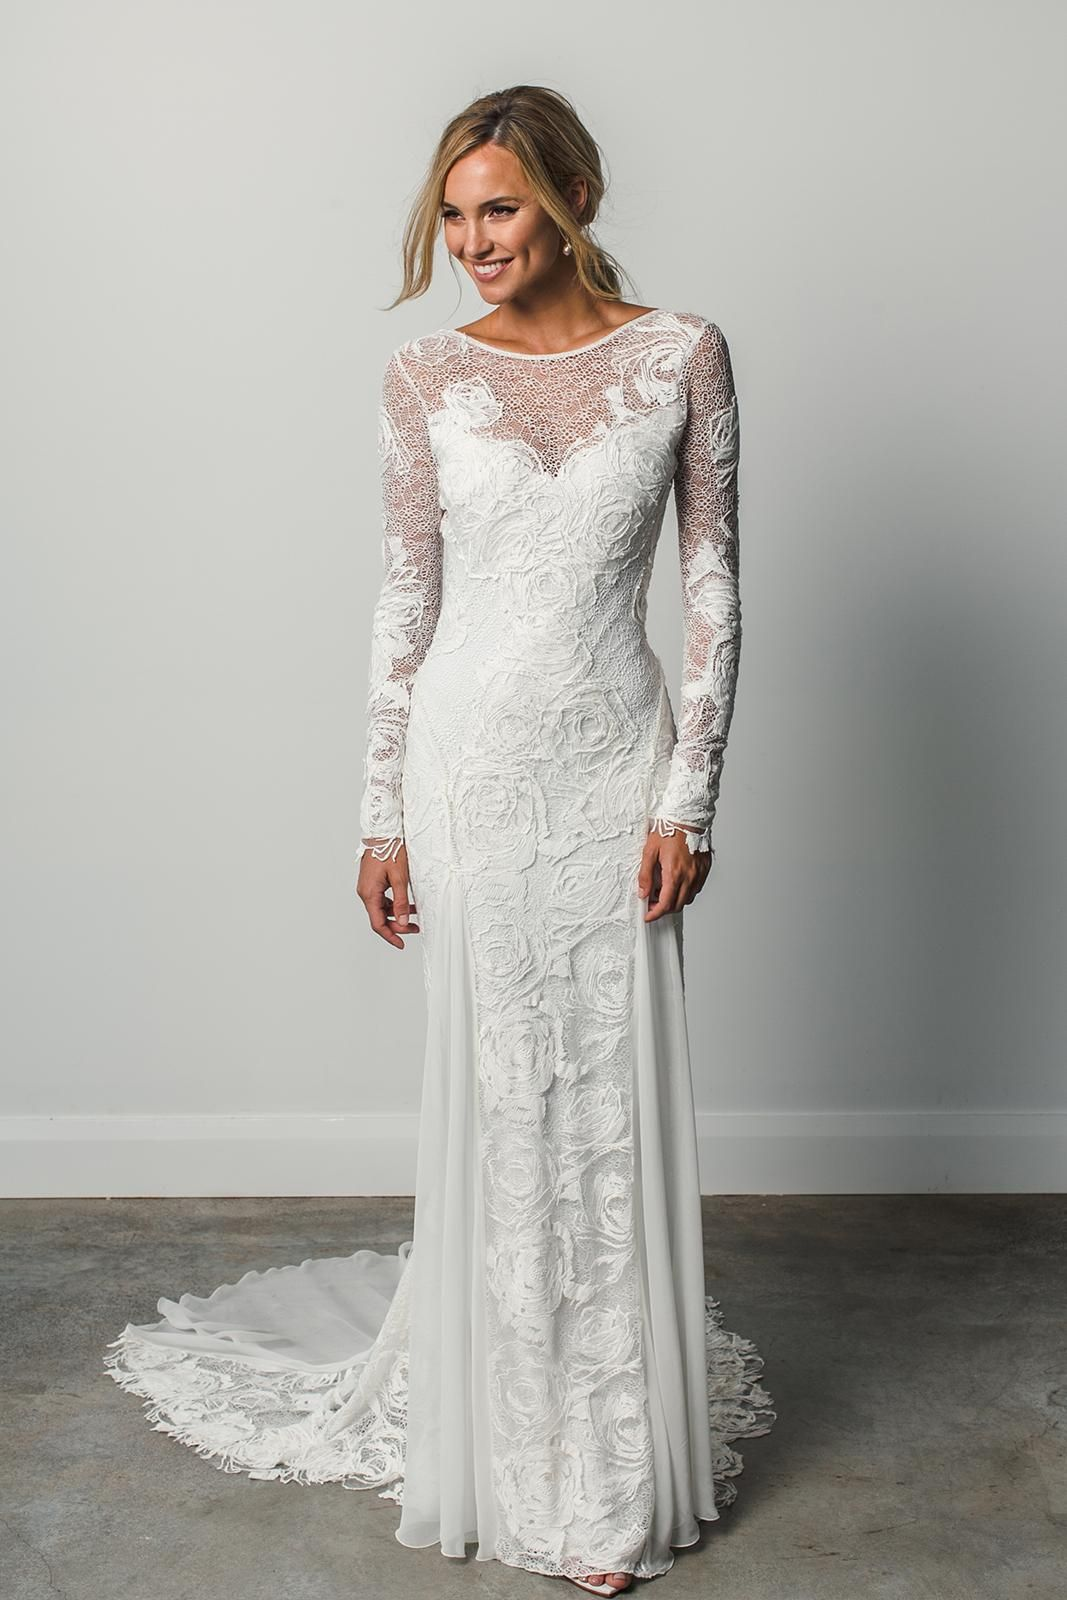 Camille | Classic elegance, Gowns and Wedding dress